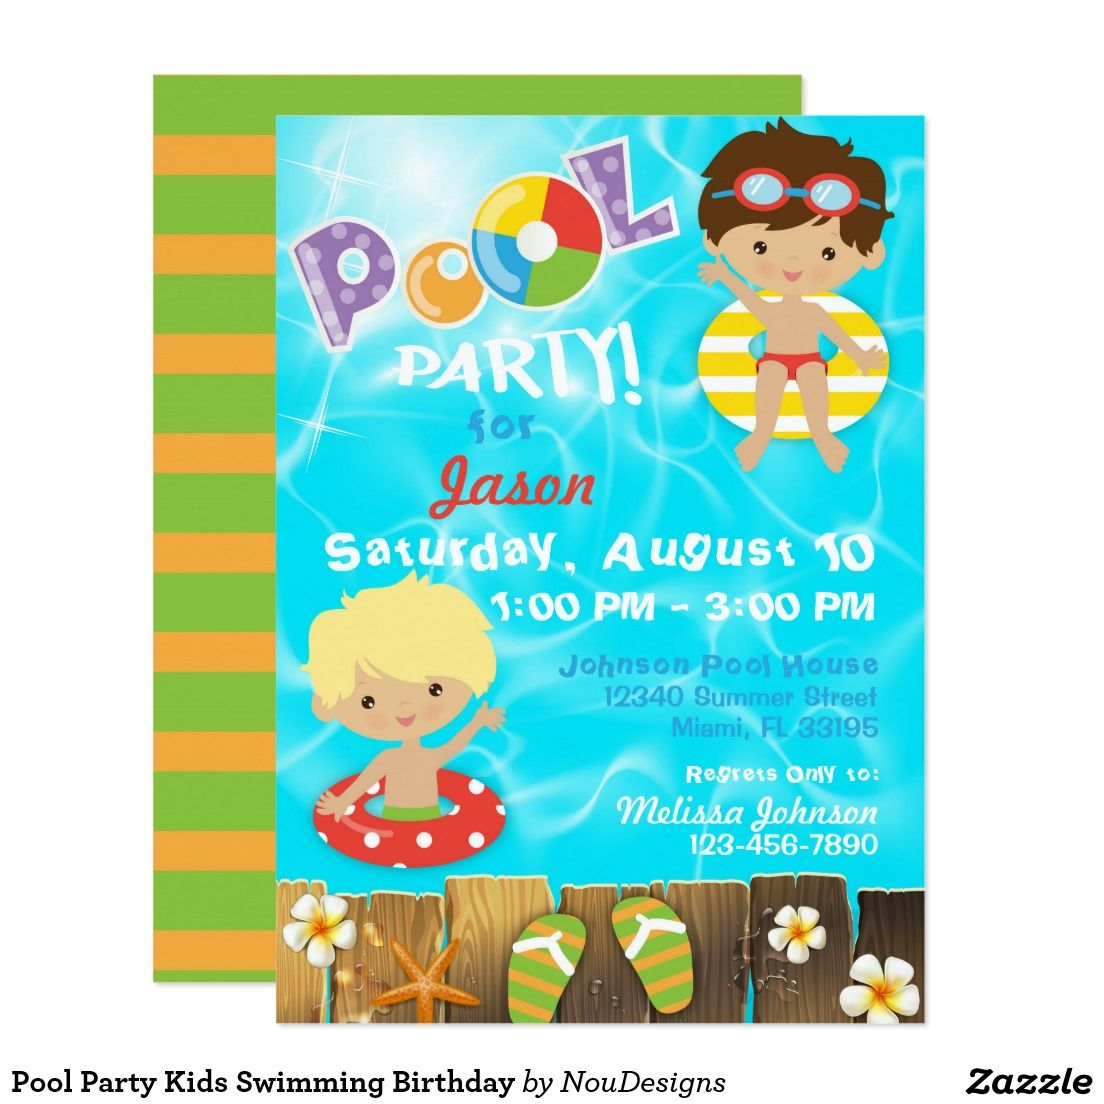 Pool Party Kids Swimming Birthday Invitation Zazzle Com